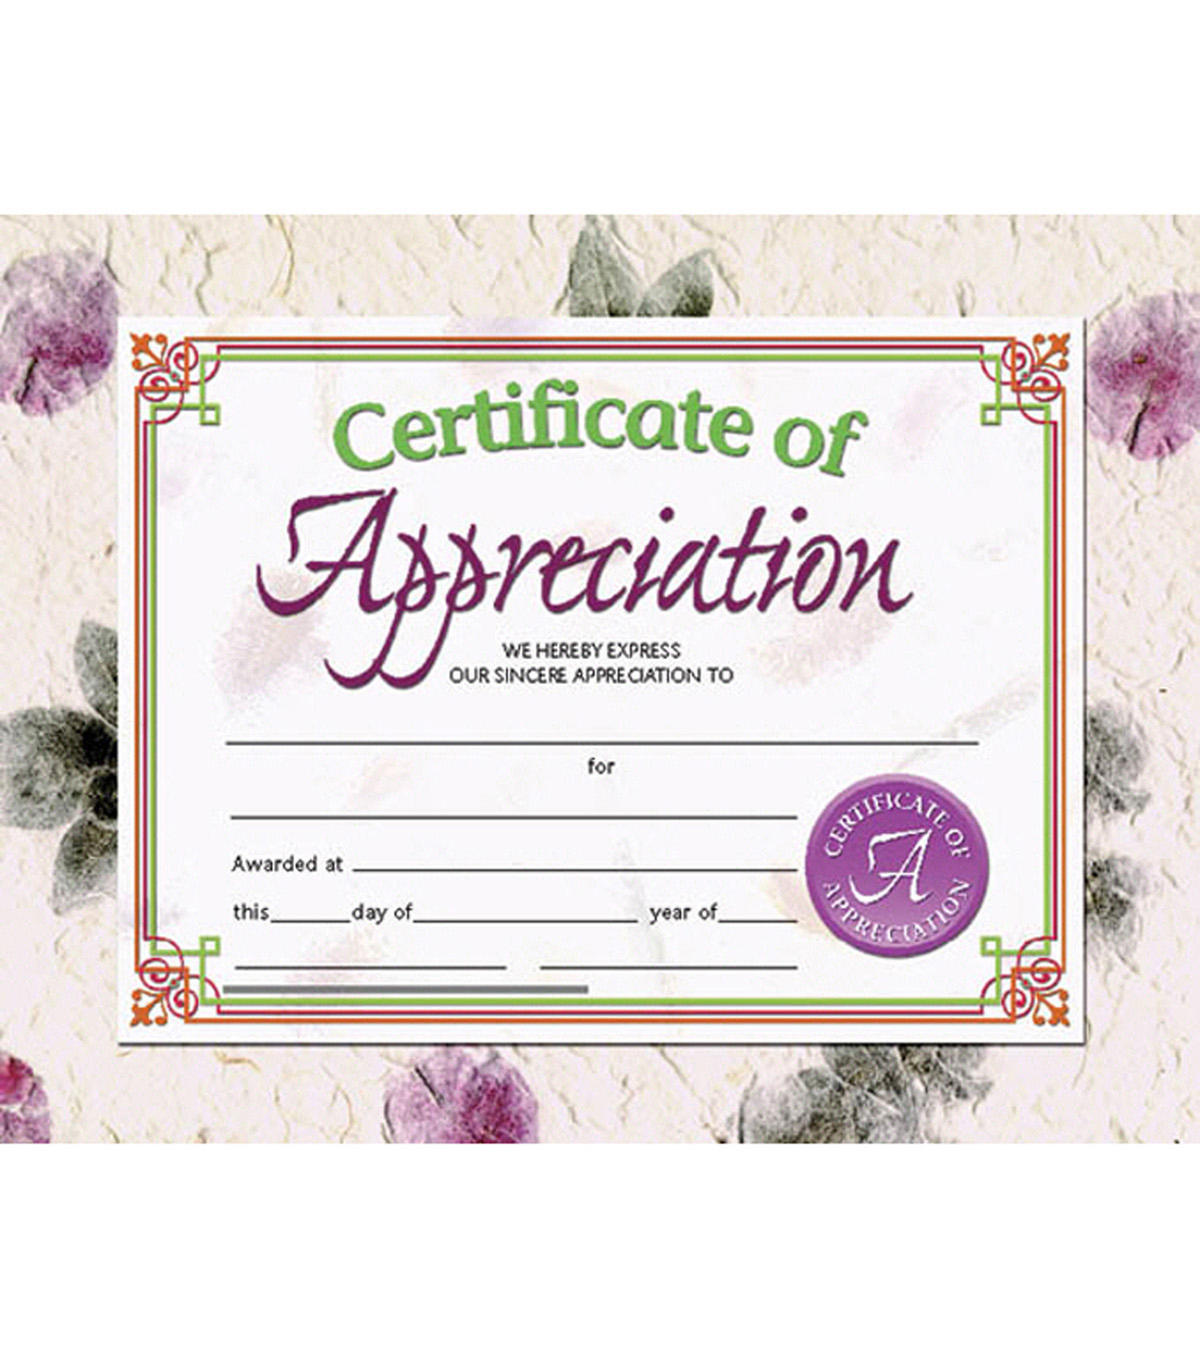 Hayes Certificate of Appreciation, 30 Per Pack, 6 Packs